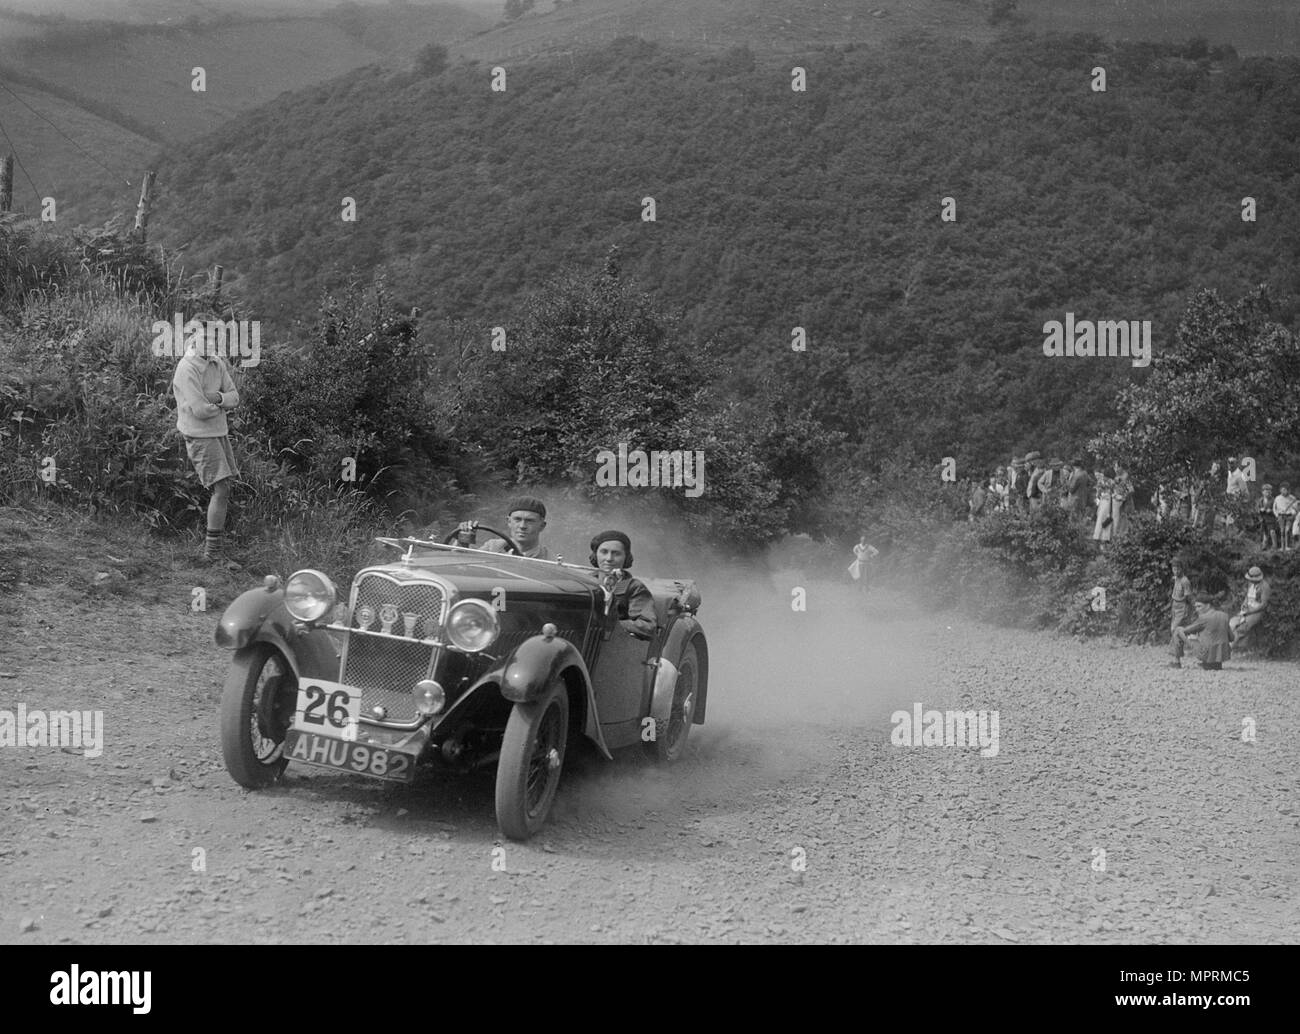 Singer competing in the Barnstaple Trial, c1935. Artist: Bill Brunell. - Stock Image